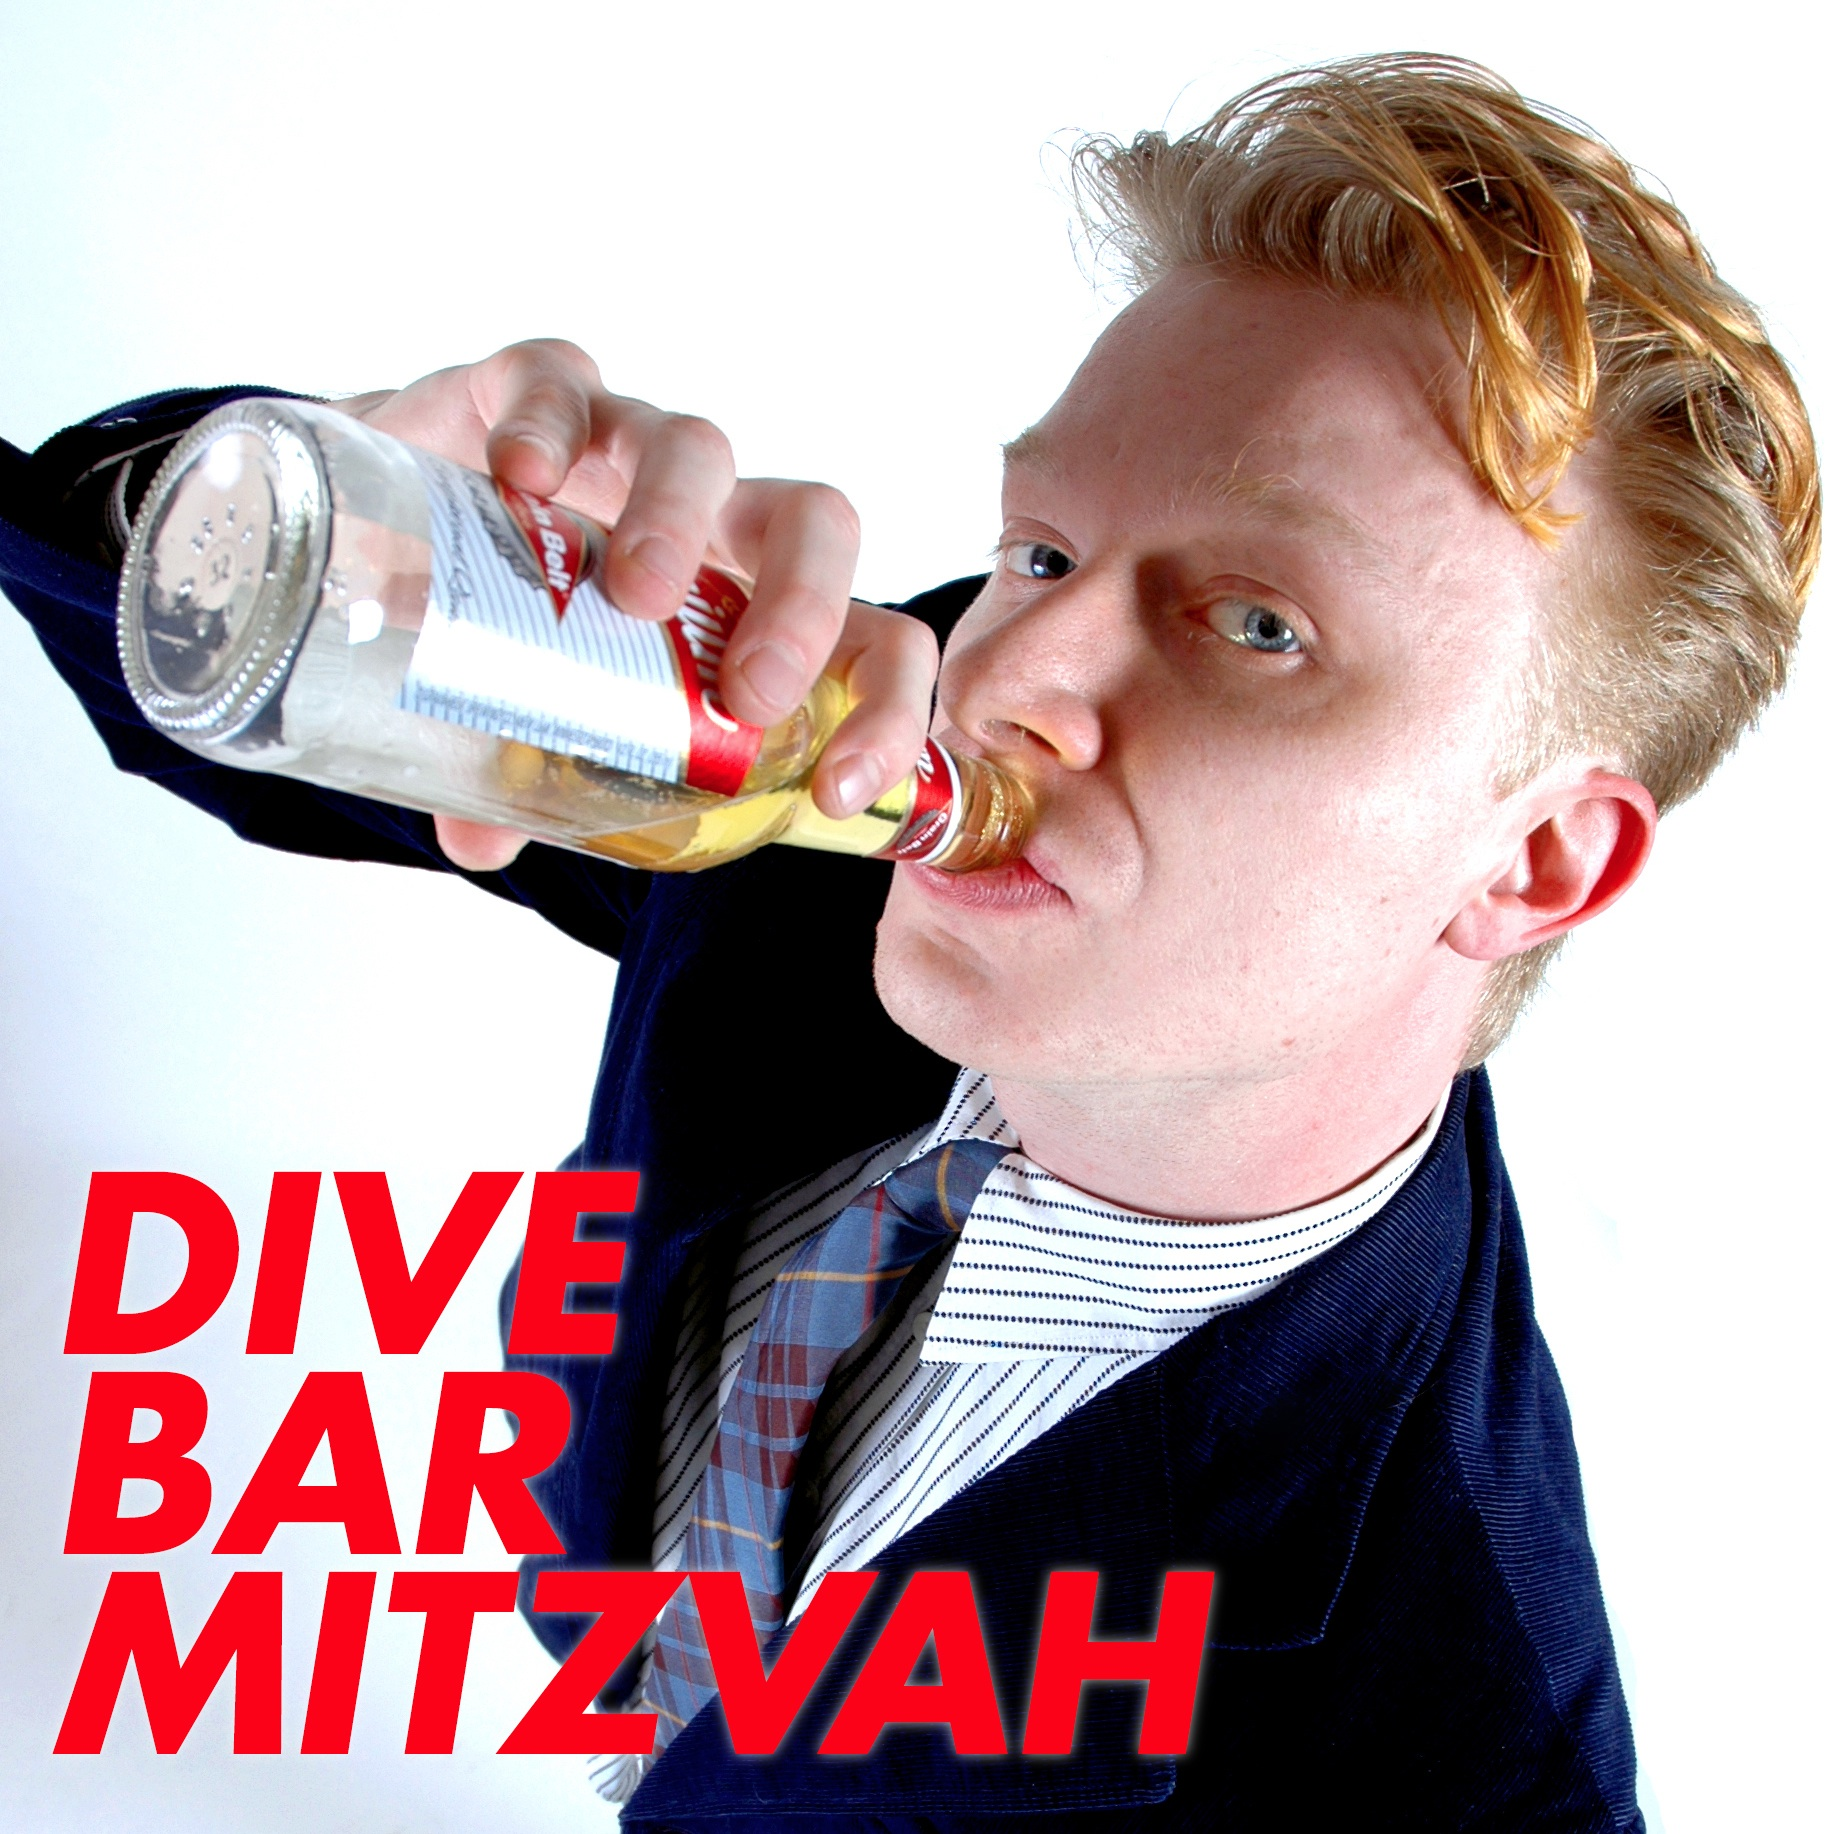 Dive Bar Mitzvah